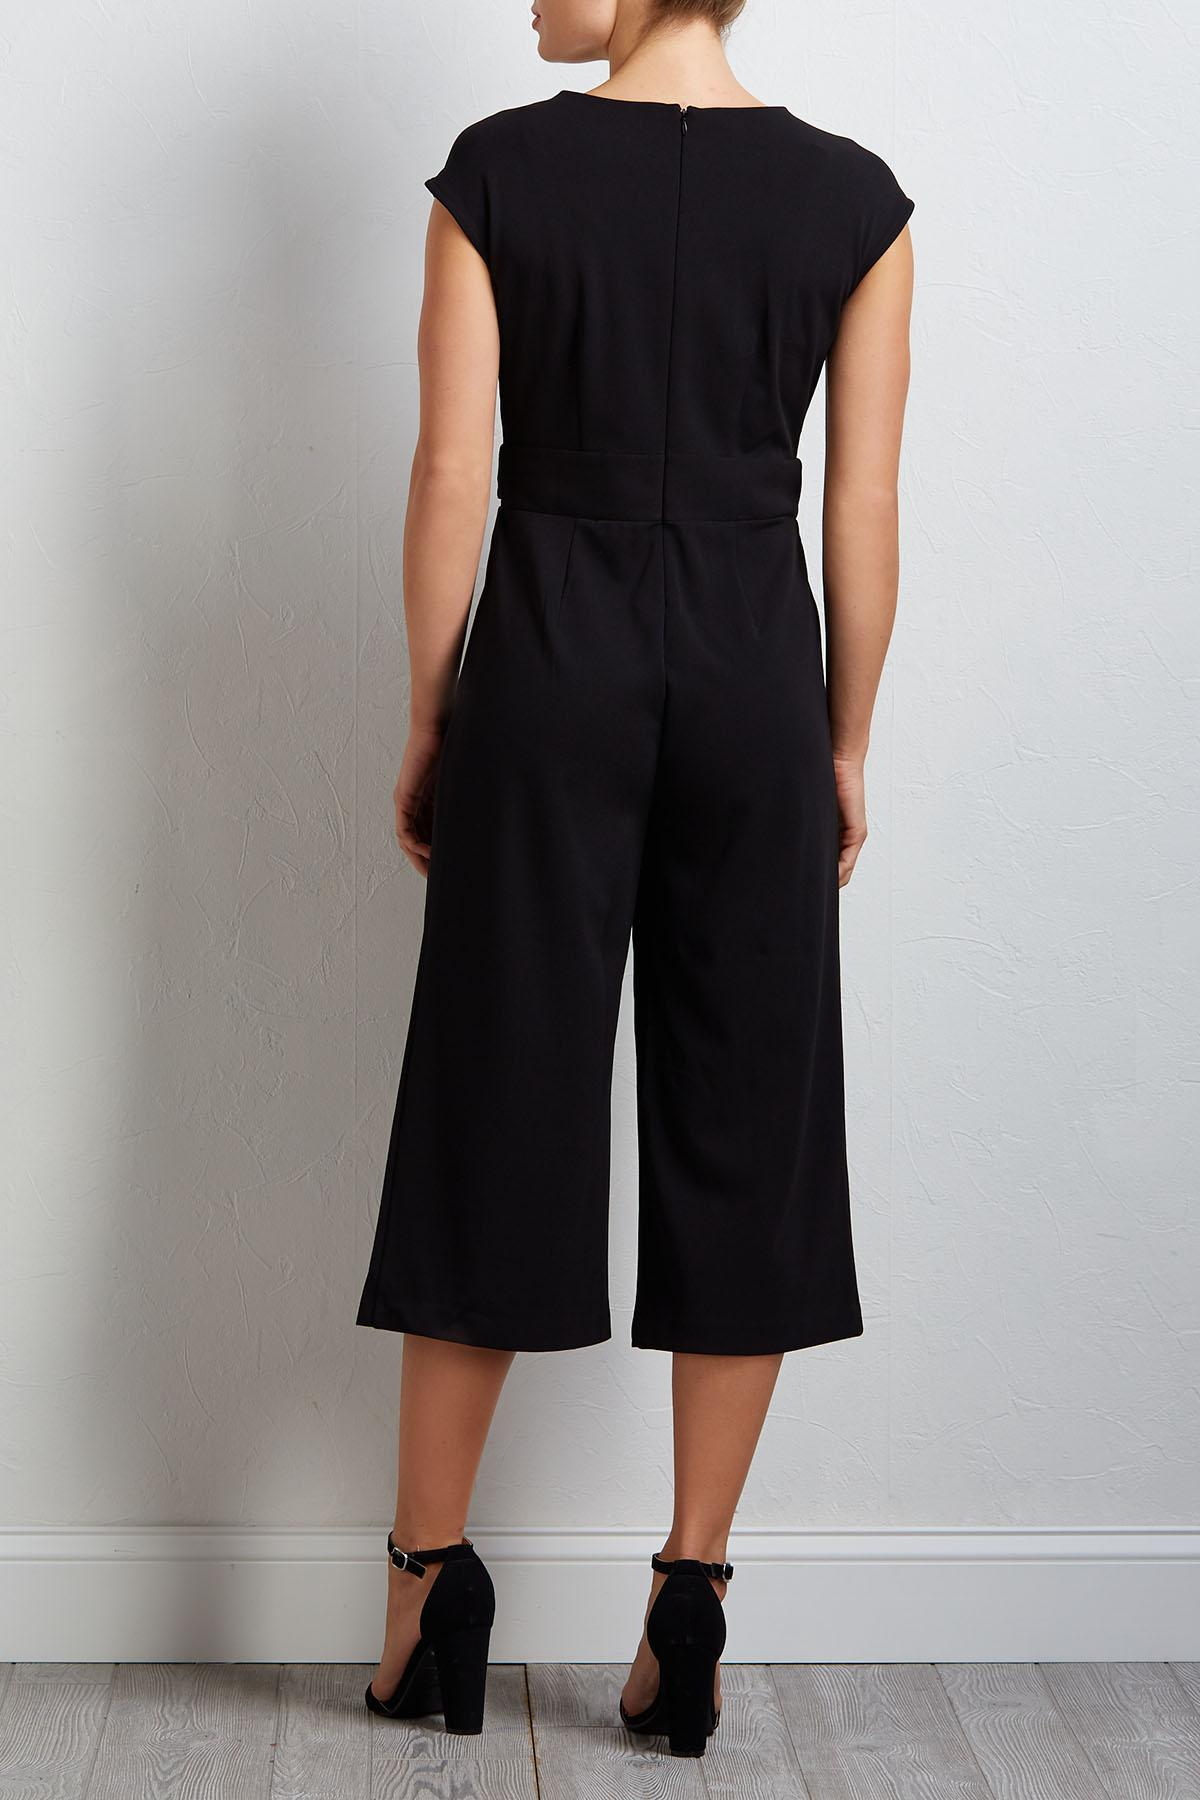 Hoop There It Is Jumpsuit